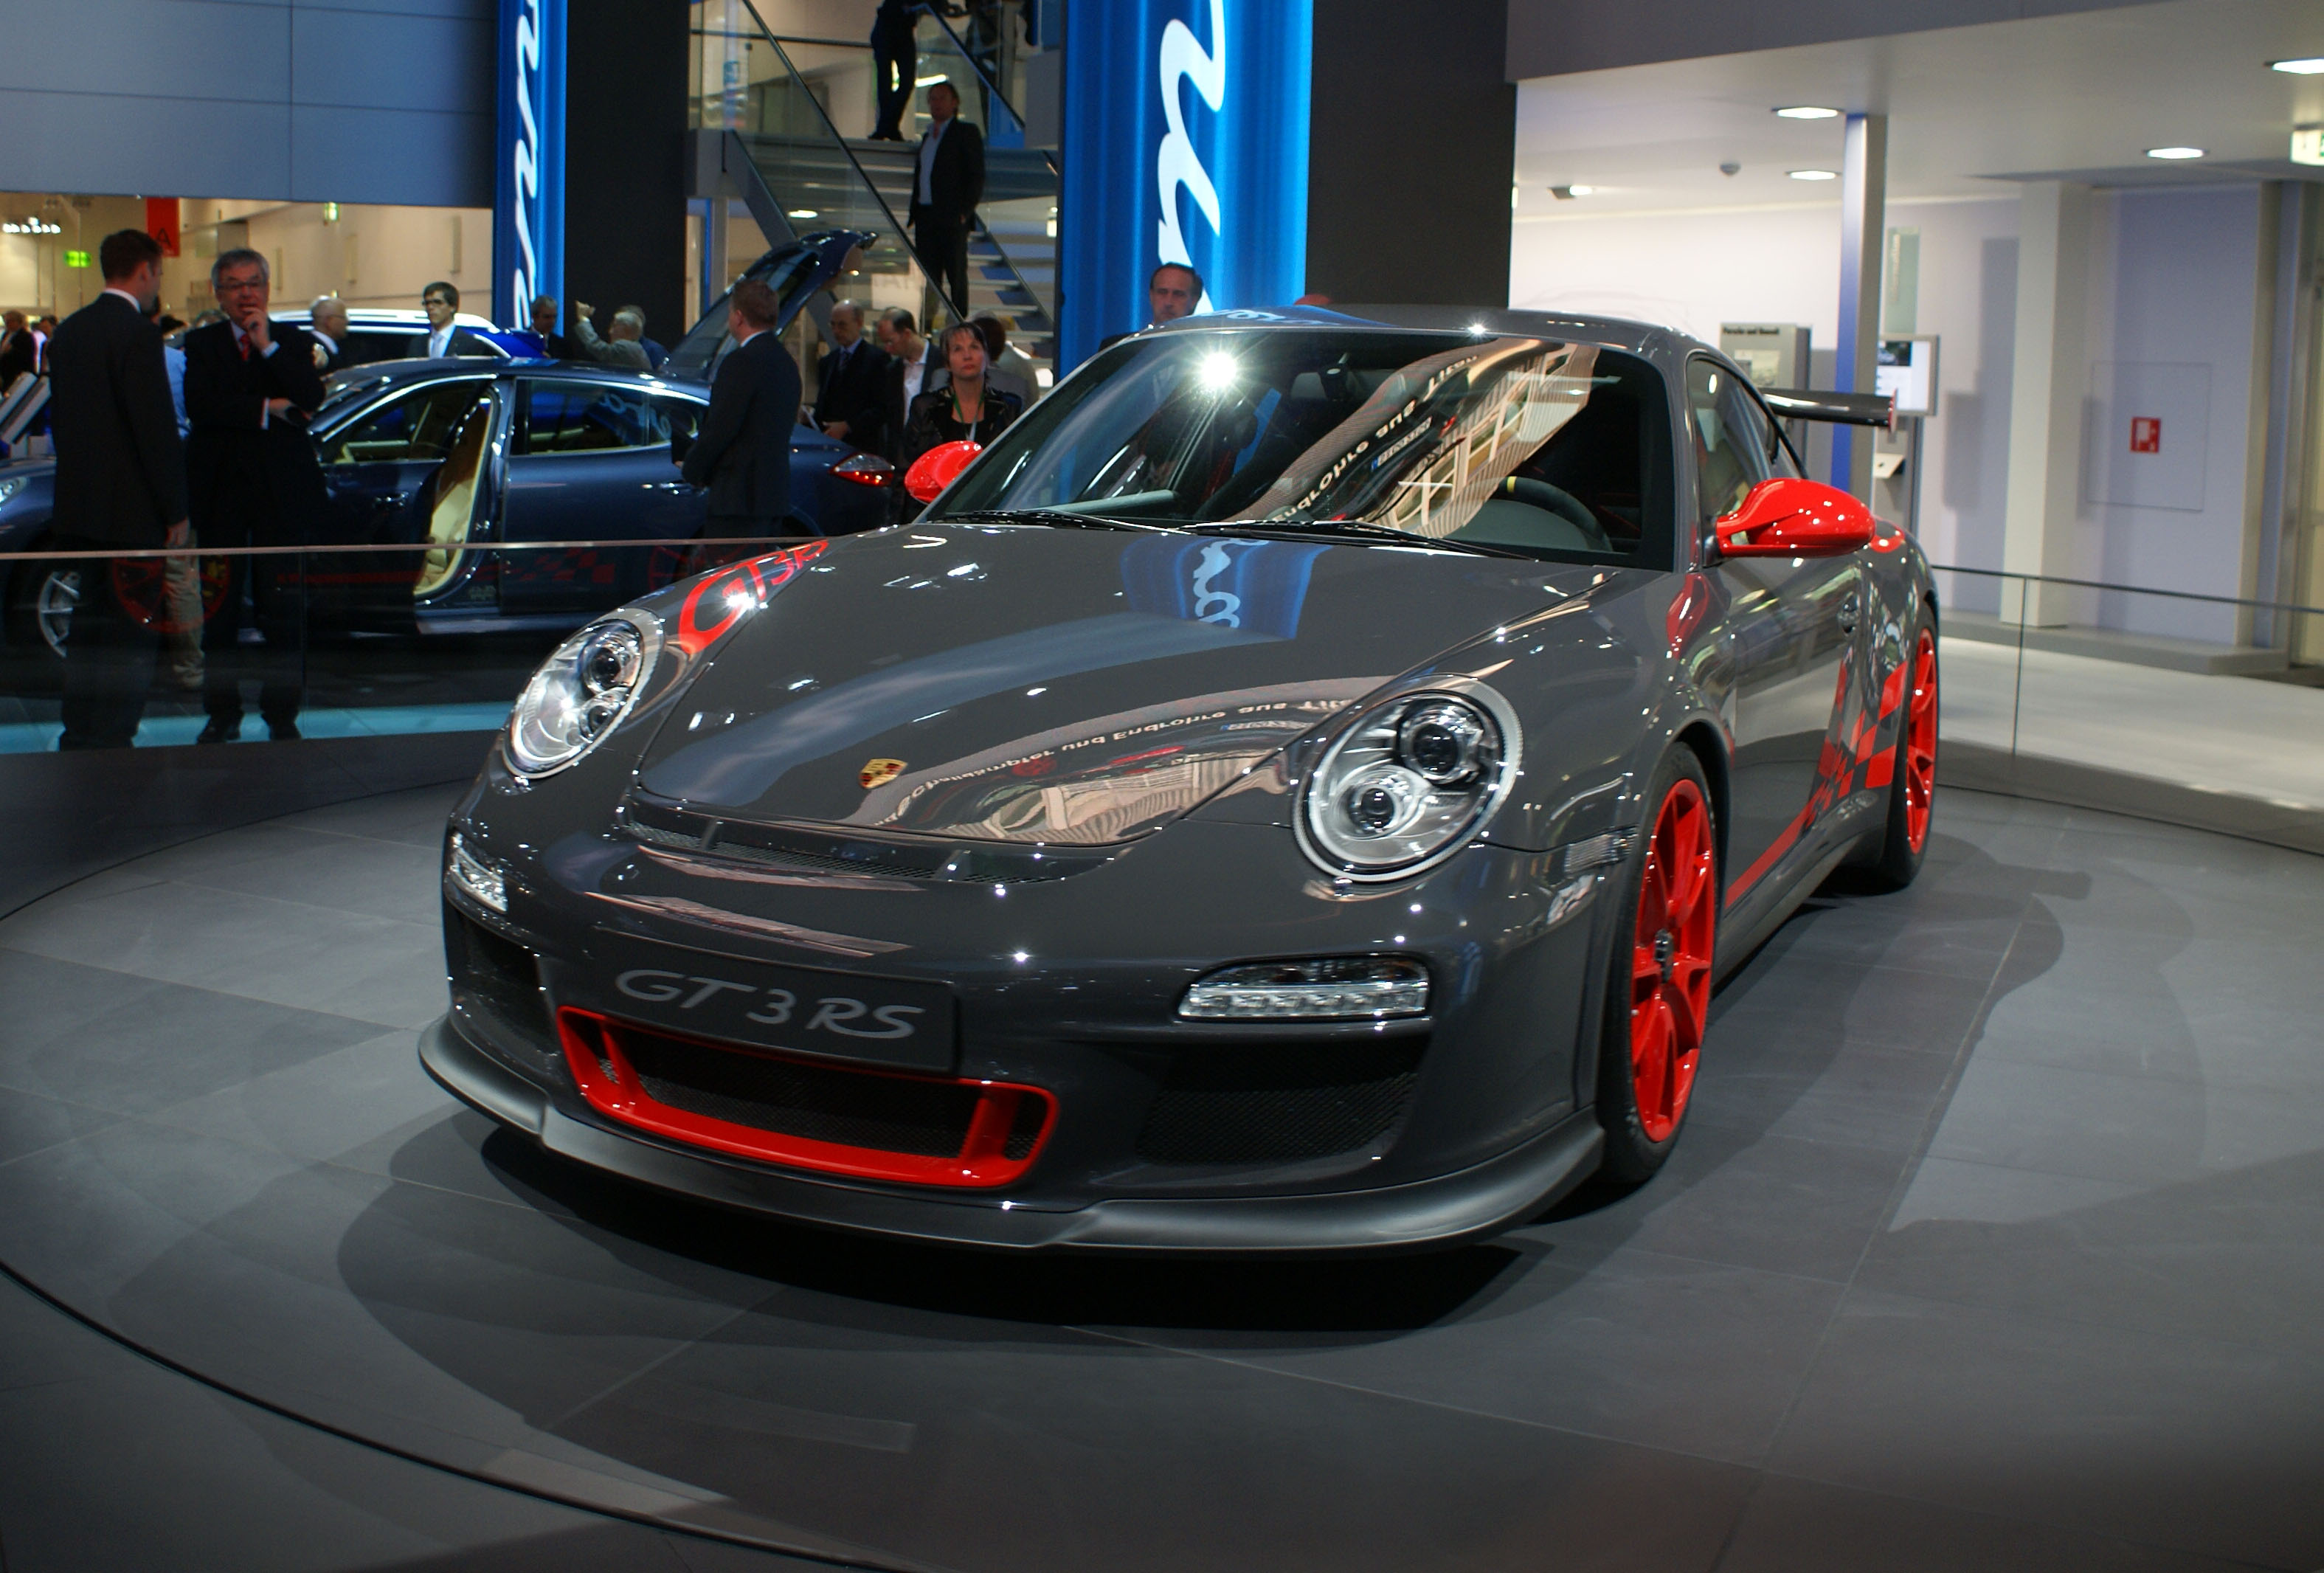 File Grey Porsche 997 Gt3 Rs Facelift Iaa 2009 Jpg